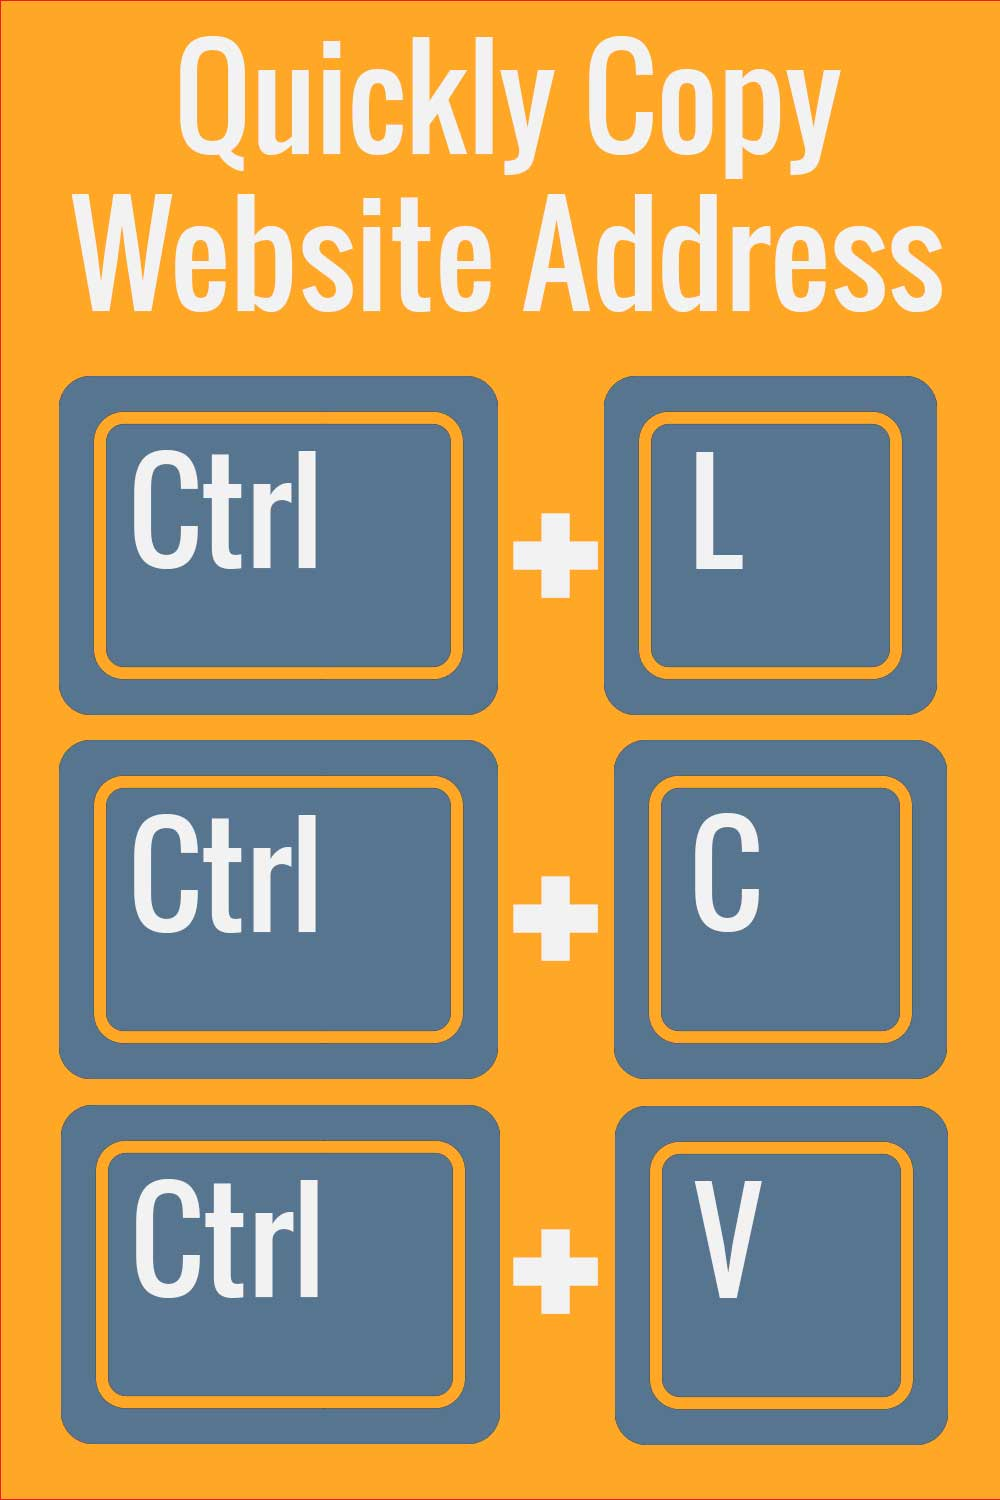 Quickly Copy Web Address